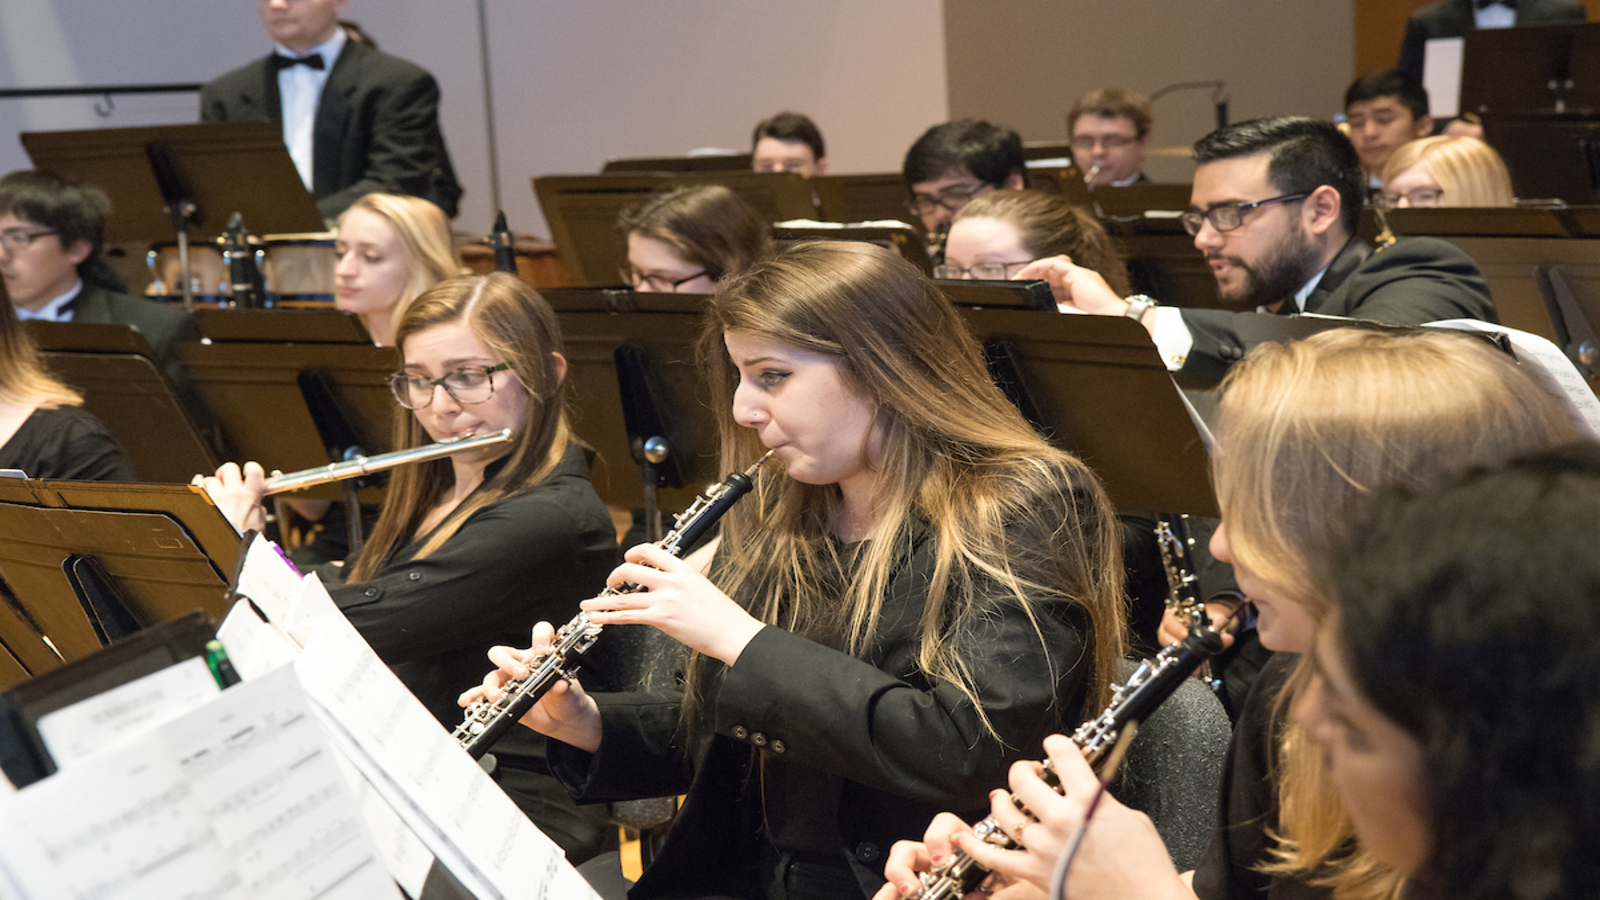 wind ensemble performs in King Concert Hall